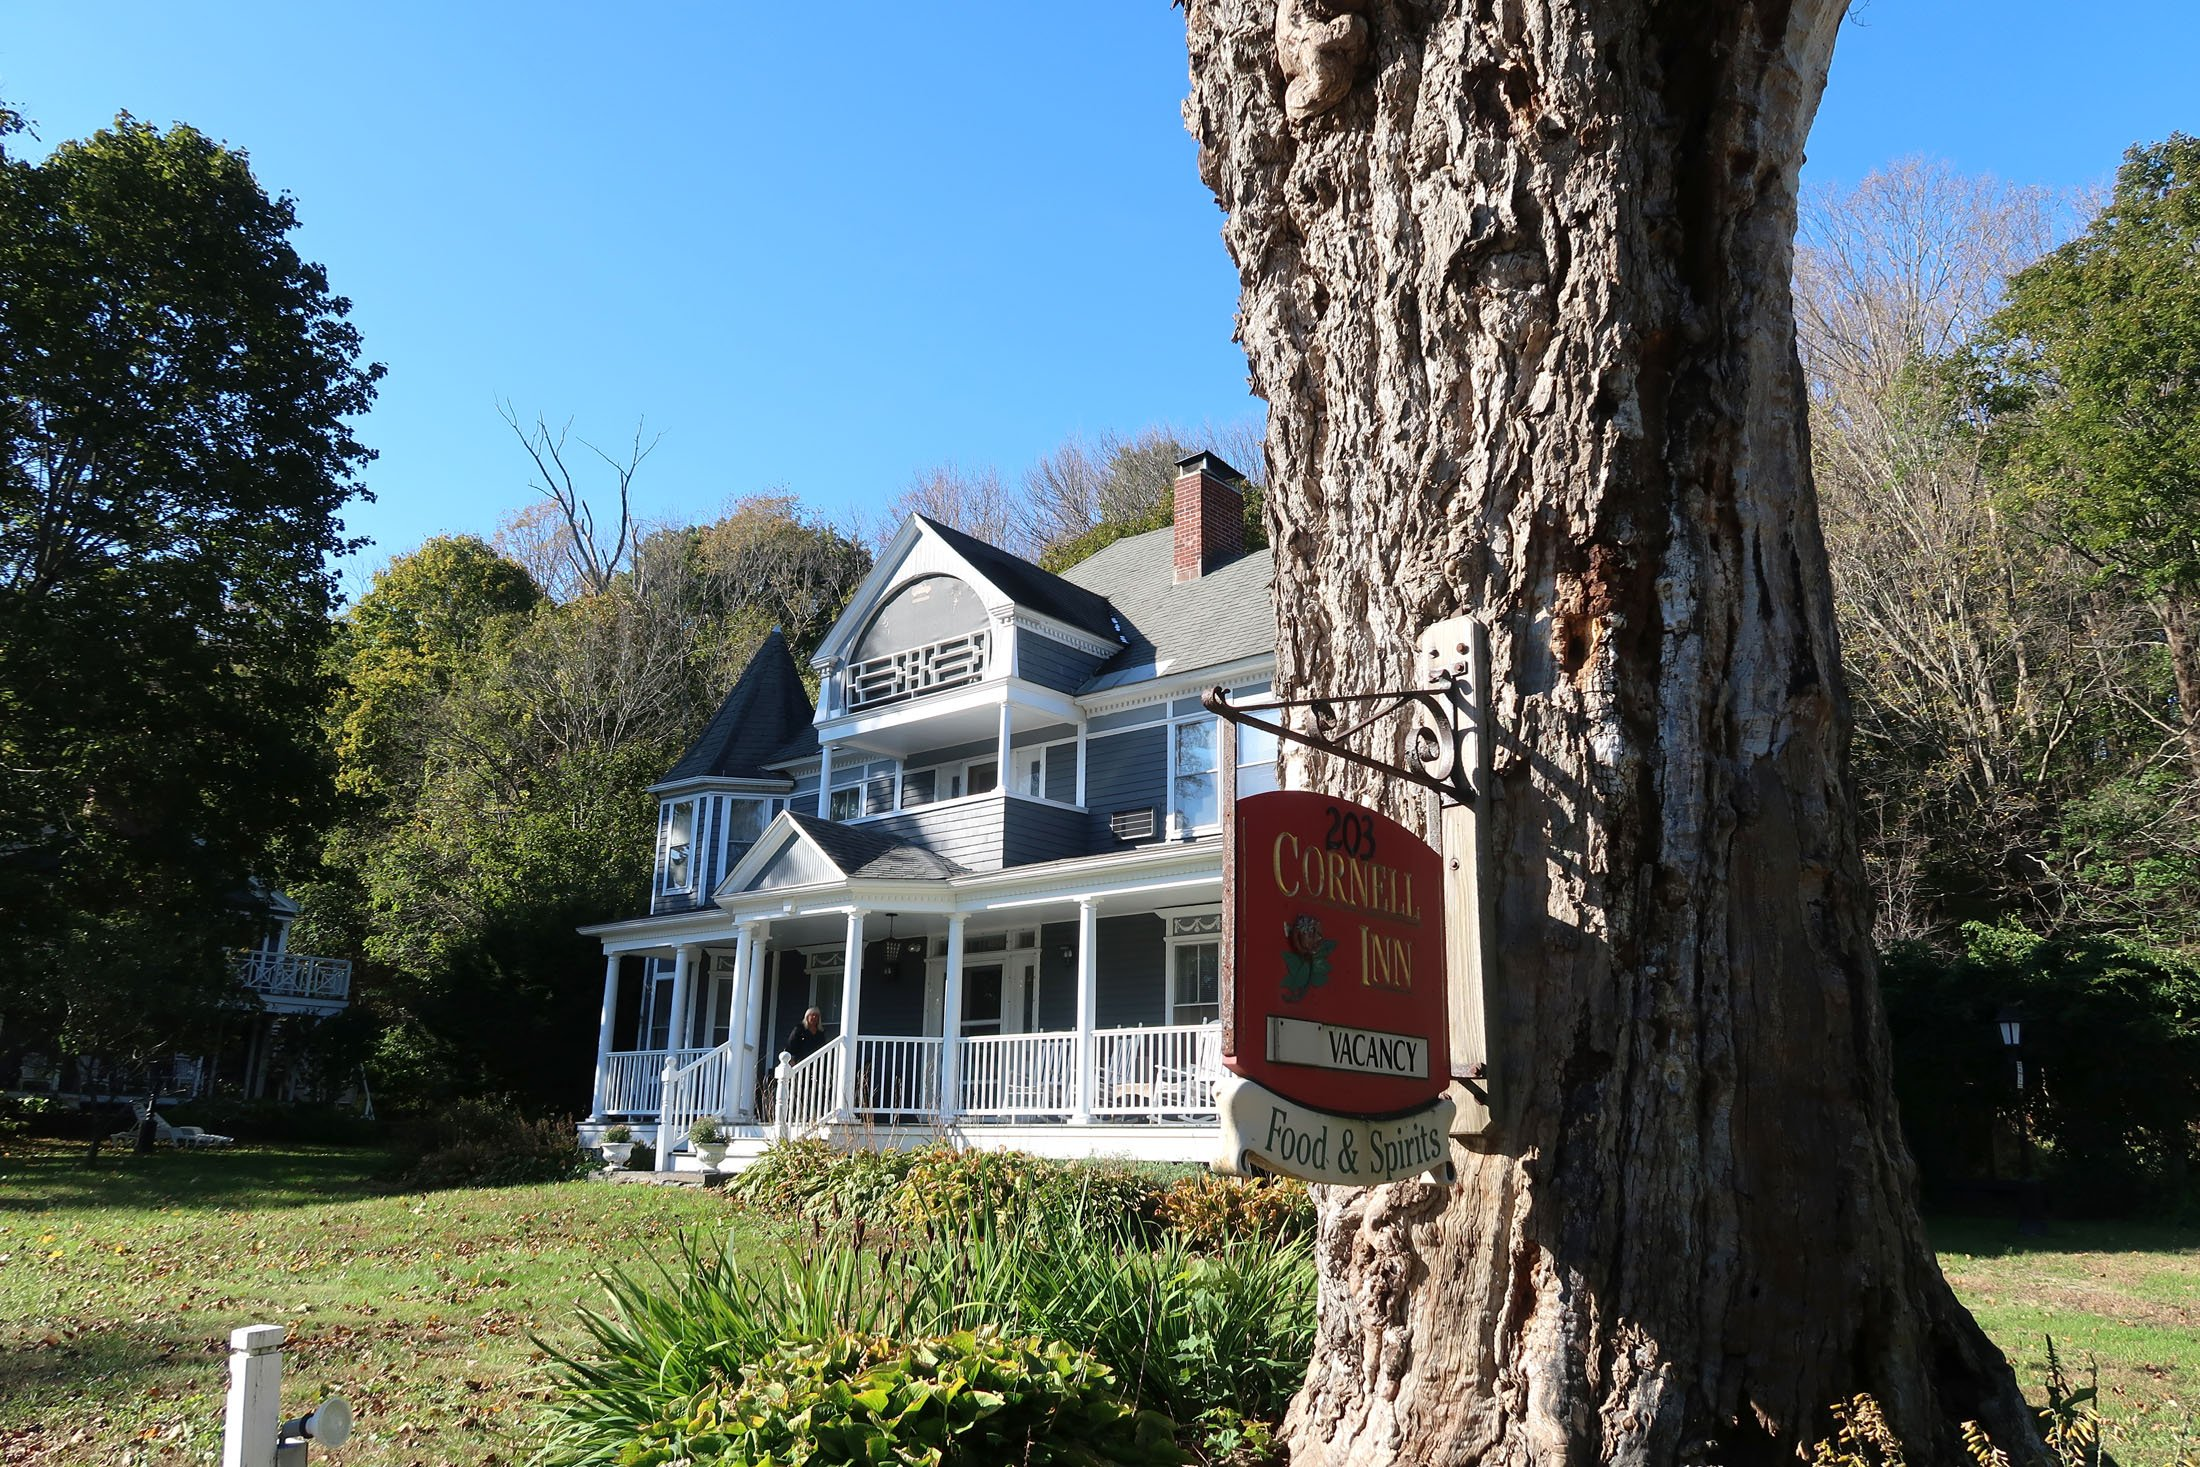 The Cornell Inn is one of the historic bed and breakfast accommodations in Lenox, Mass. (Craig Davis/CraigslegzTravels.com)